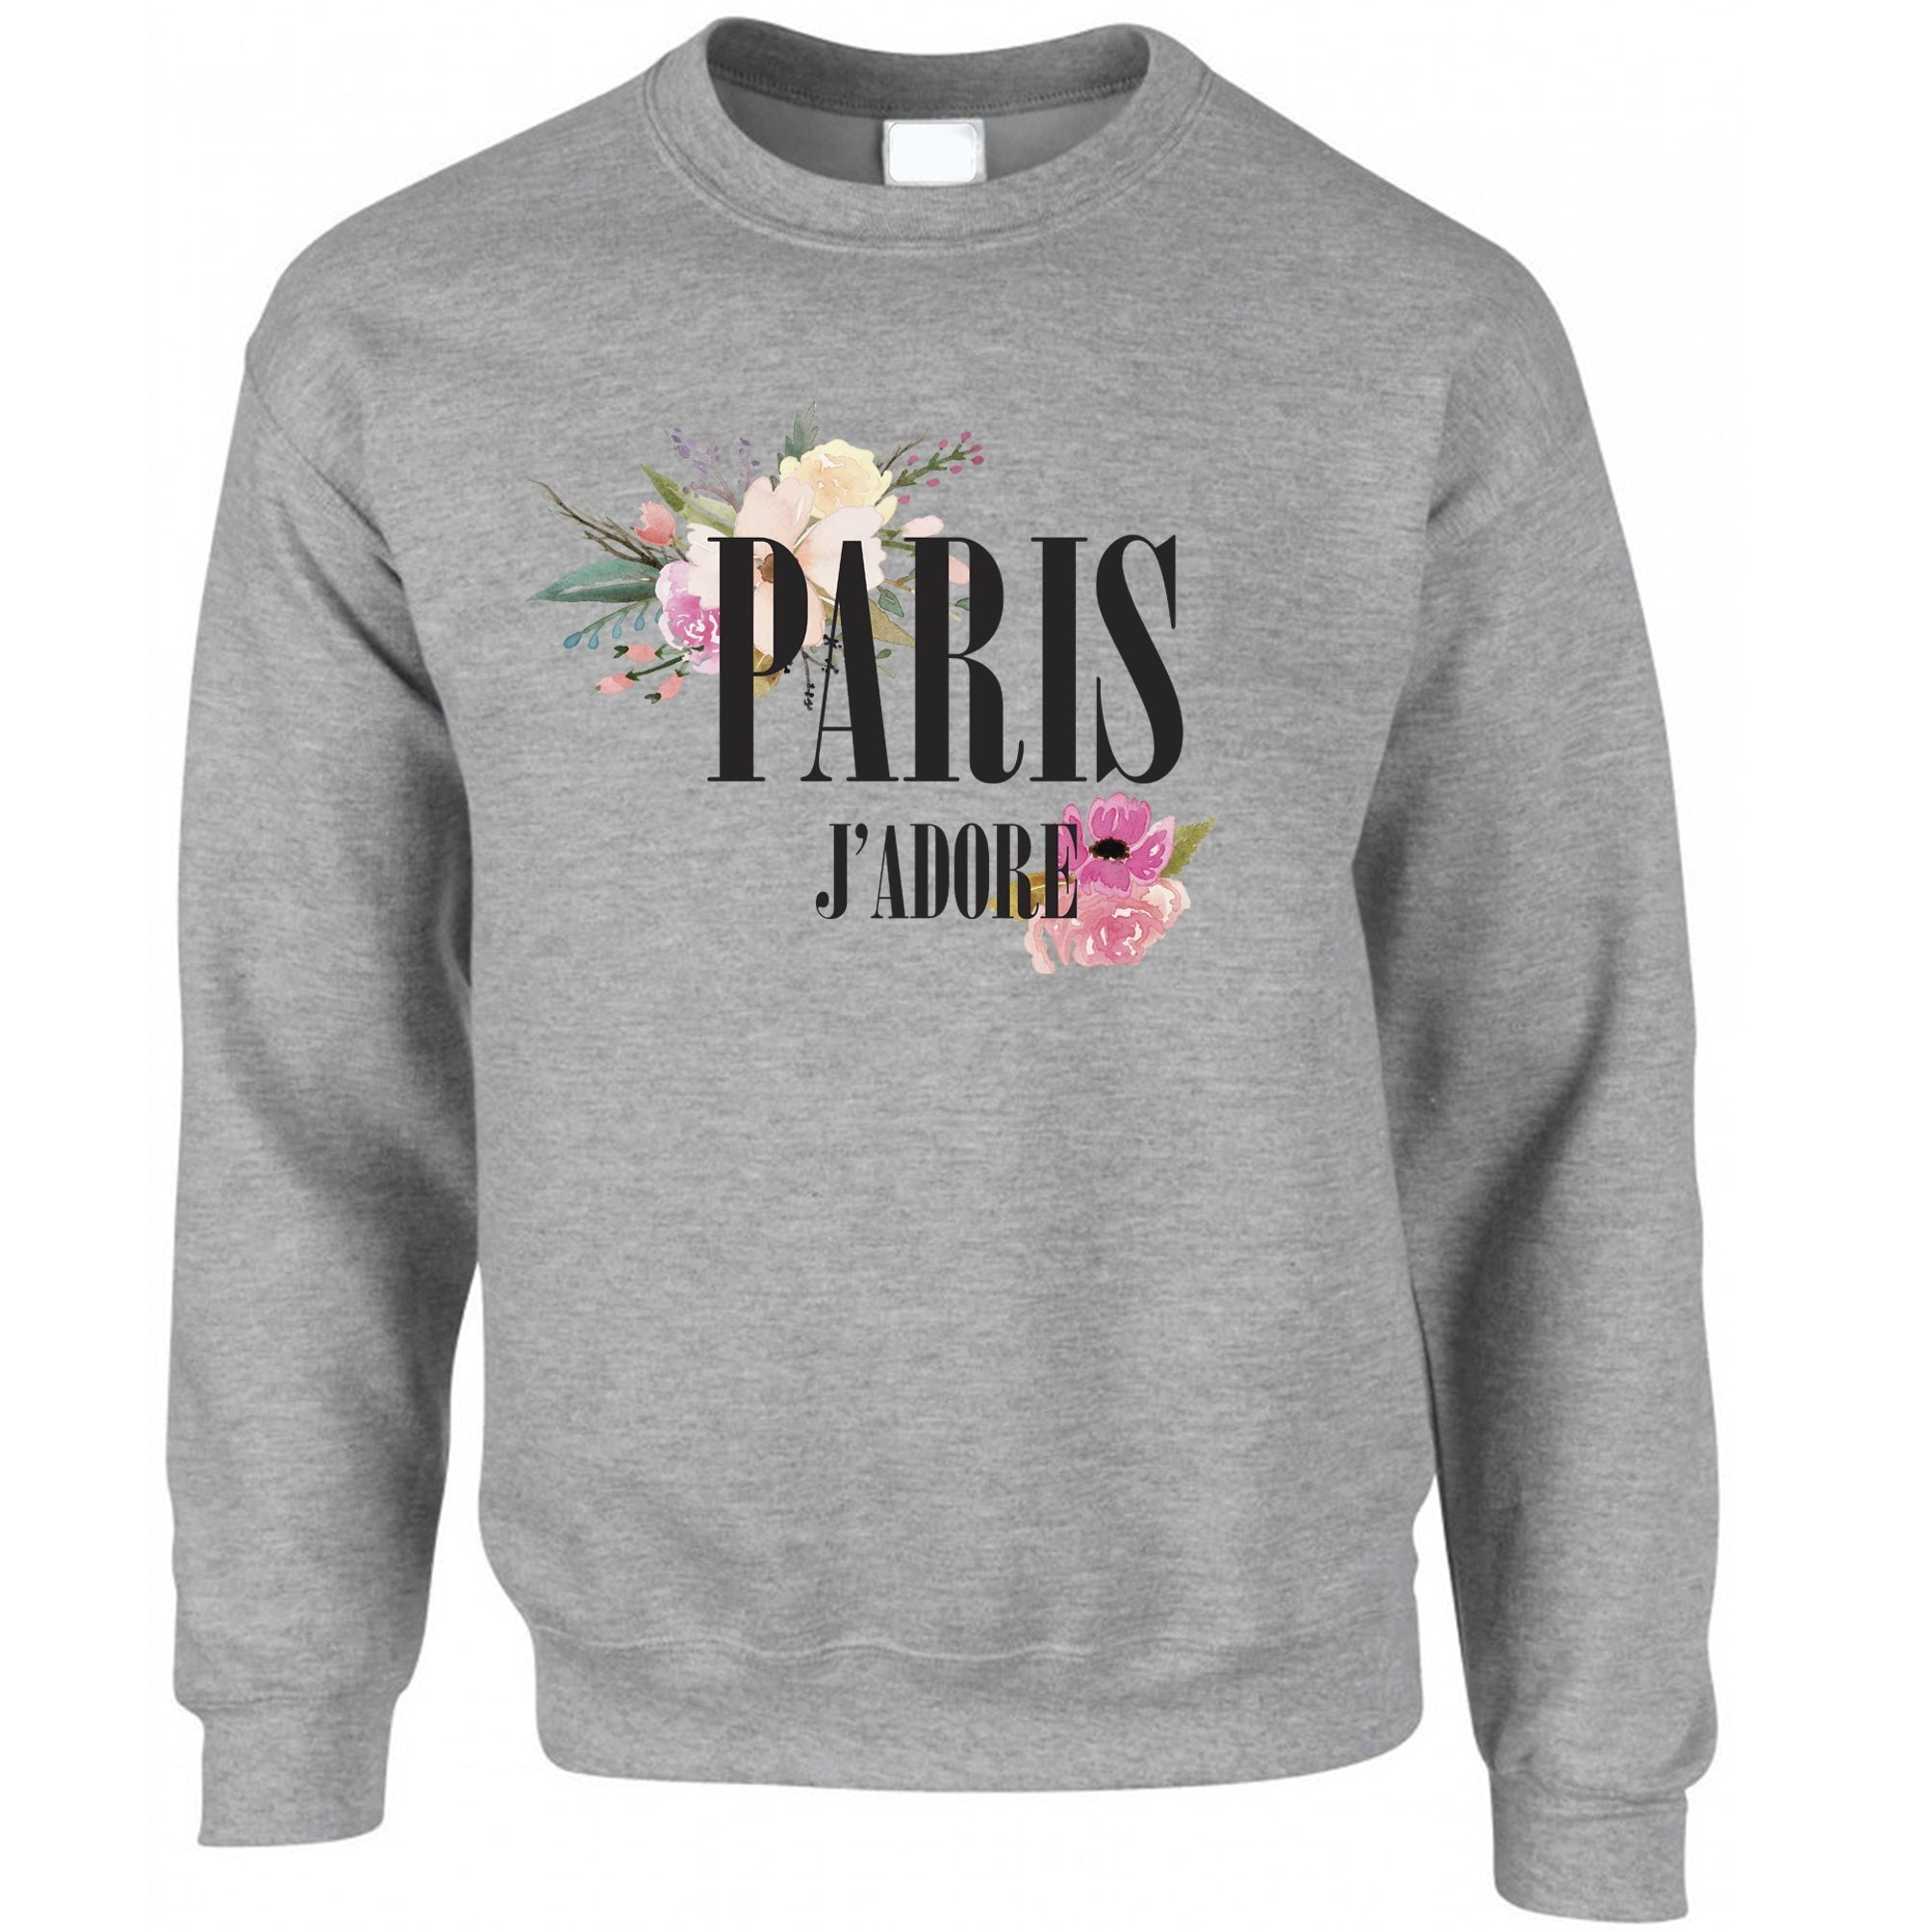 Watercolour Art Jumper J'adore Paris Flowers Logo Sweatshirt Sweater